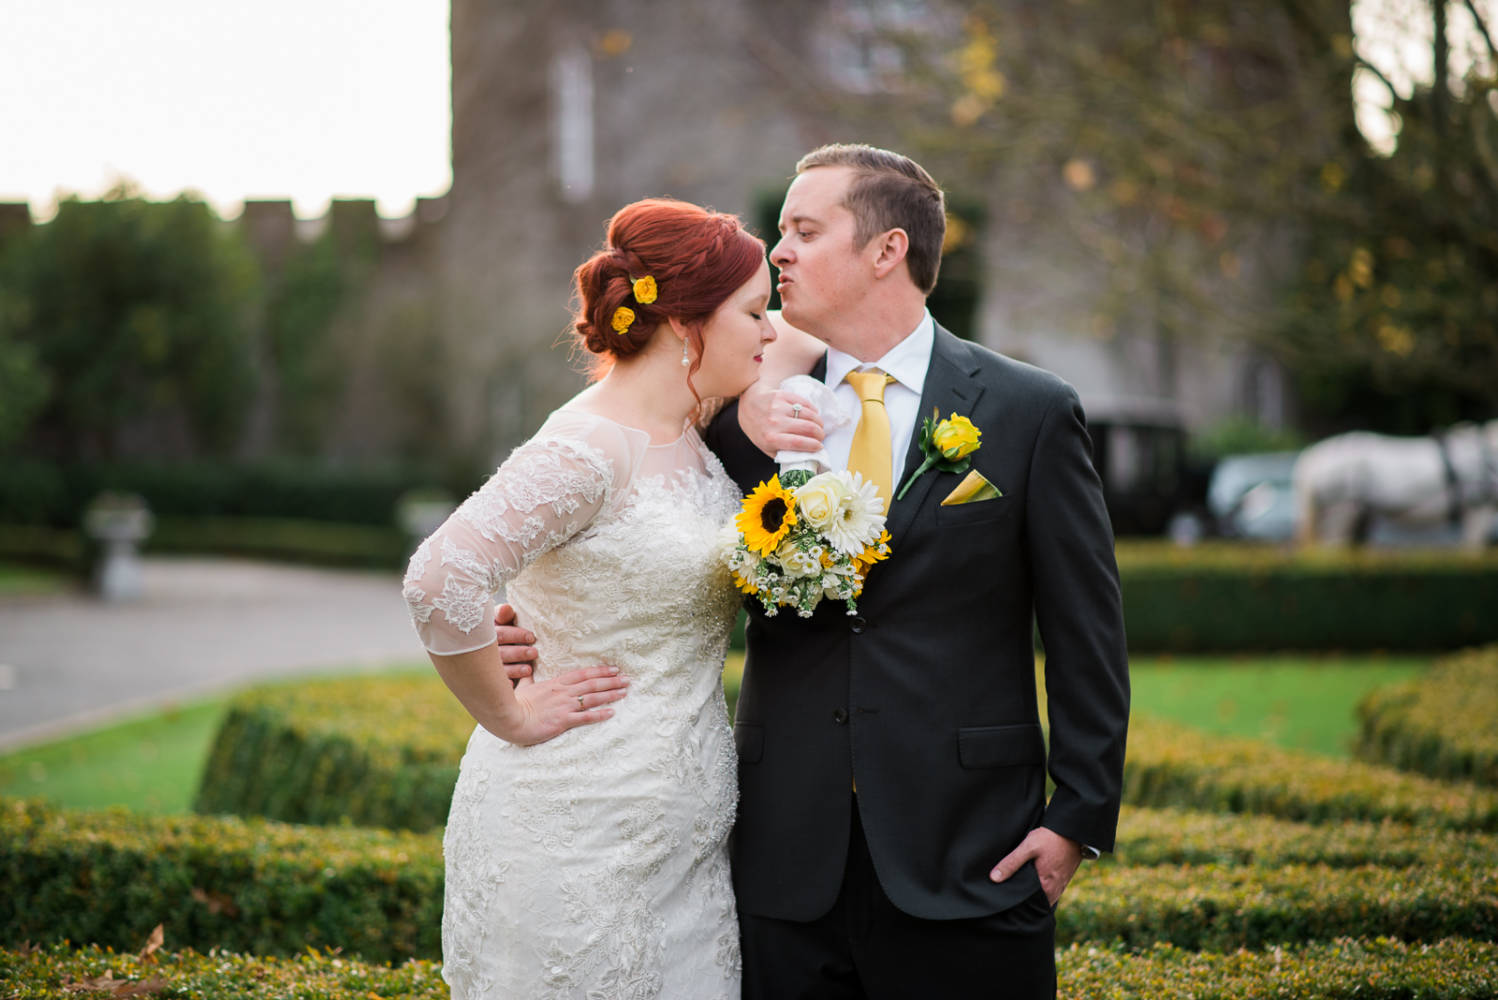 Kathy Silke Photography - Dublin Ireland Wedding Photographer - Wedding Exit Ideas-1